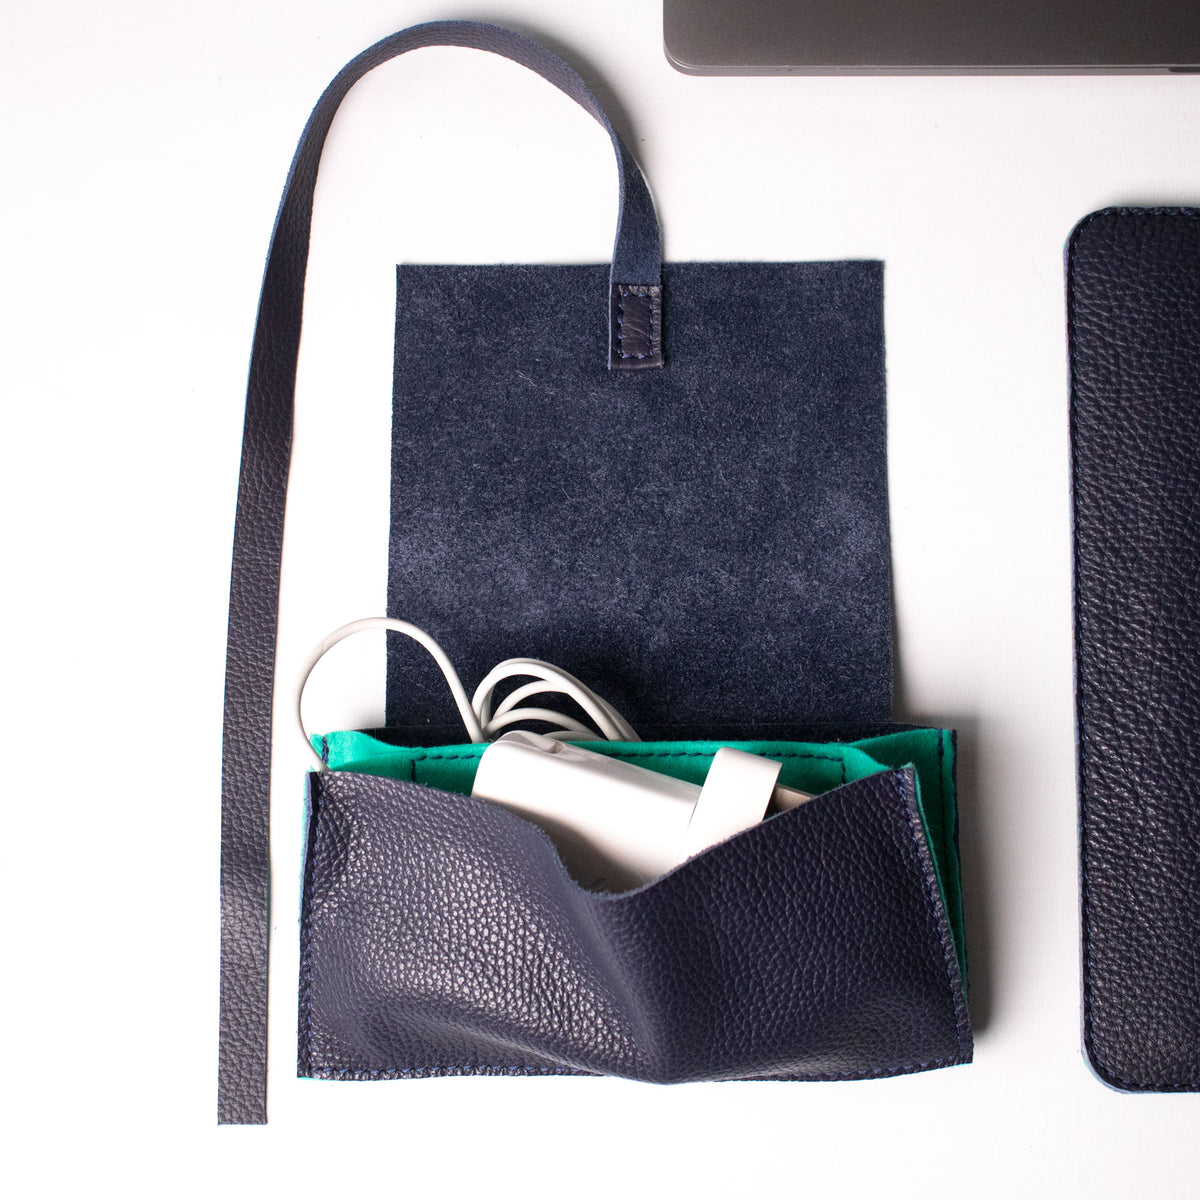 Cable Bag - Navy and Mint - RYAN London